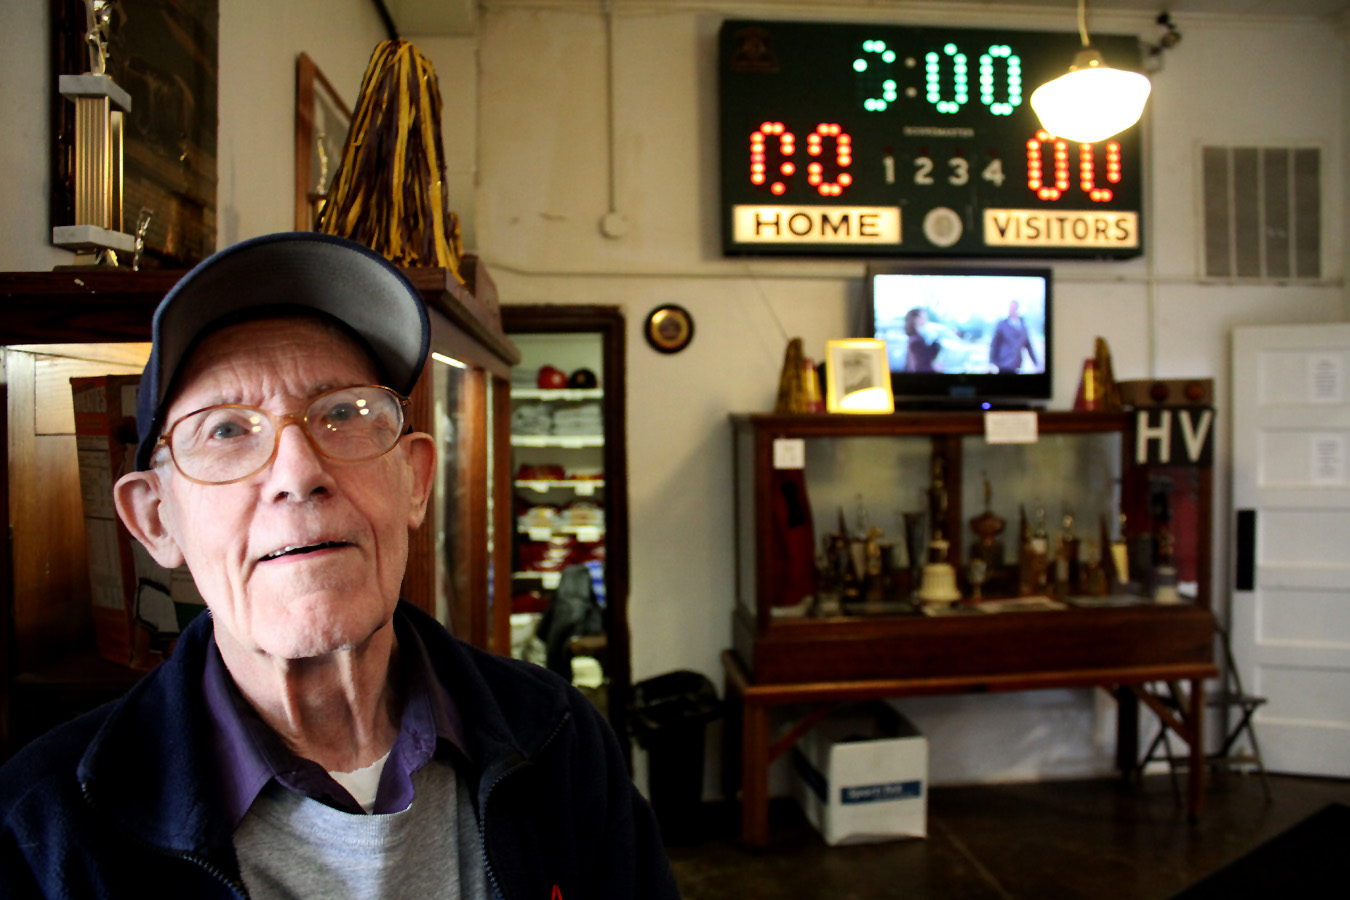 Knightstown native Bill Sitler is one of the few remaining citizens who actually played ball in the gym as a high school student. Sitler has been an active Hoosier Gym volunteer for decades, having served as treasurer, tour guide and general goodwill ambassador. Present when Hoosiers Director David Anspaugh visited, Sitler told him how he'd played ball in the gym as a youngster. That brief story was enough to move Anspaugh to tears, overcome apparently by the nostalgia. Here, Sitler is show in the Hoosier Gym foyer.